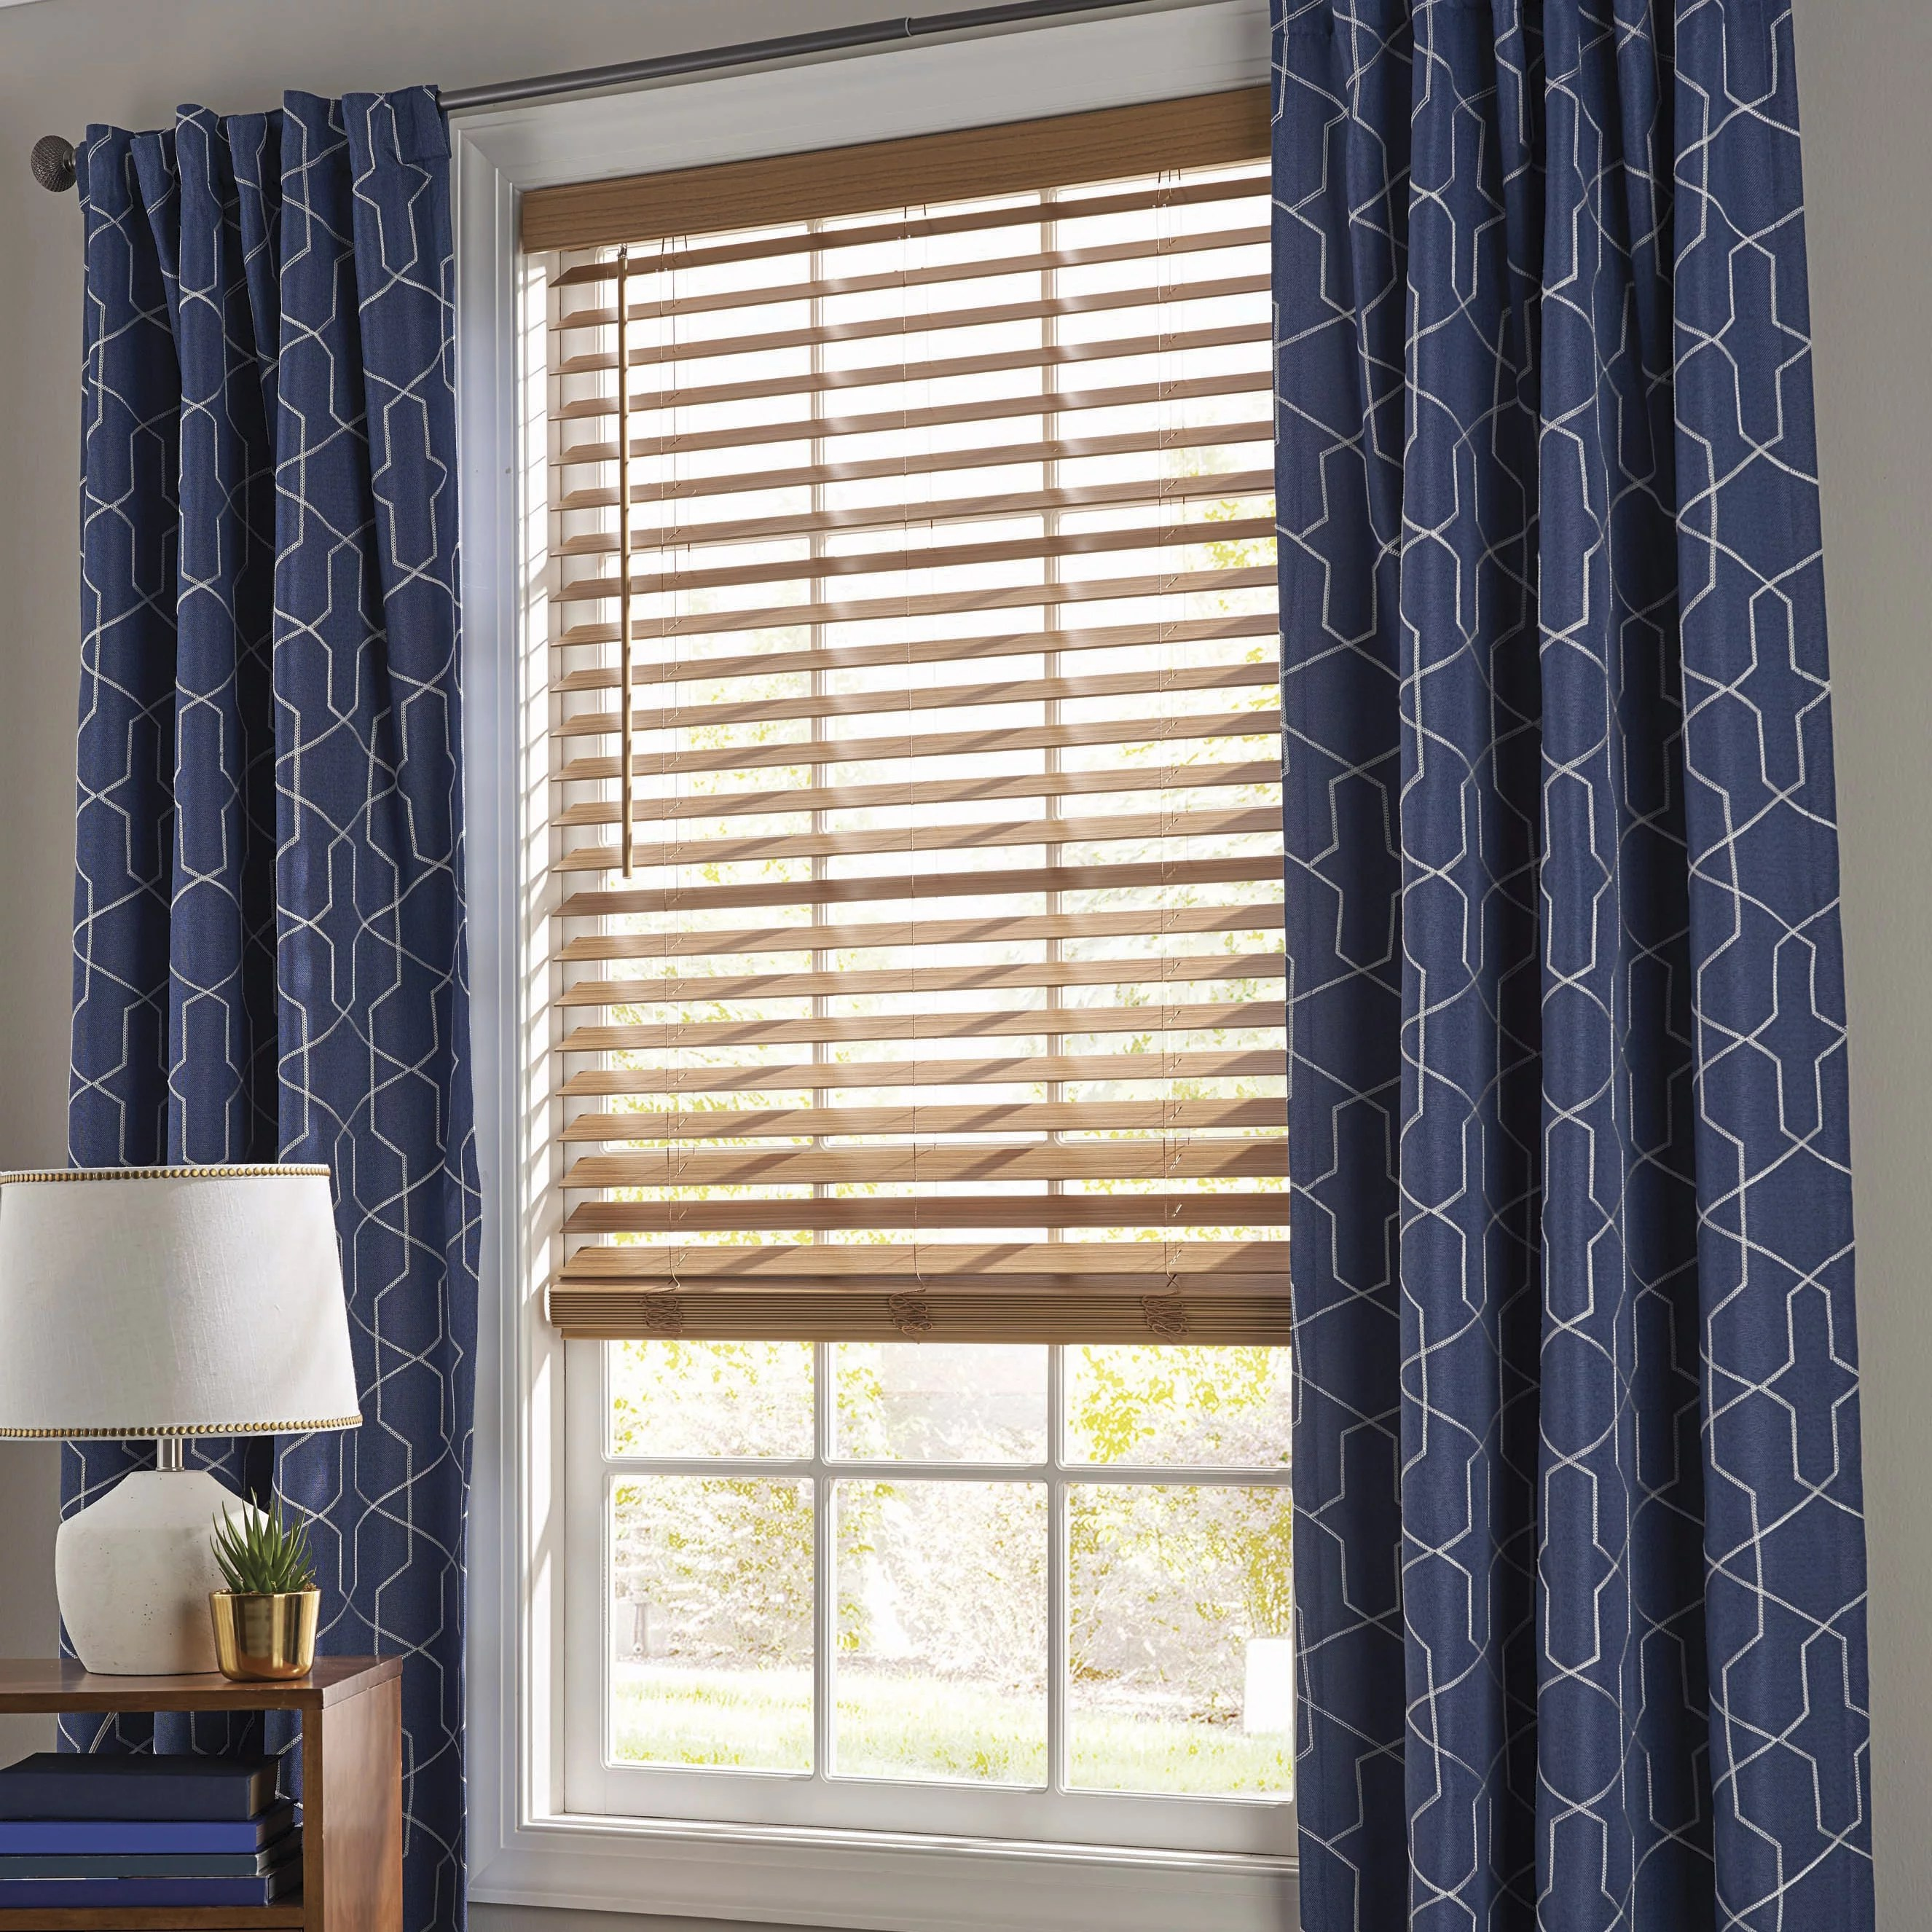 Where Can I Buy Cheap Curtains Curtains Window Treatments Walmart